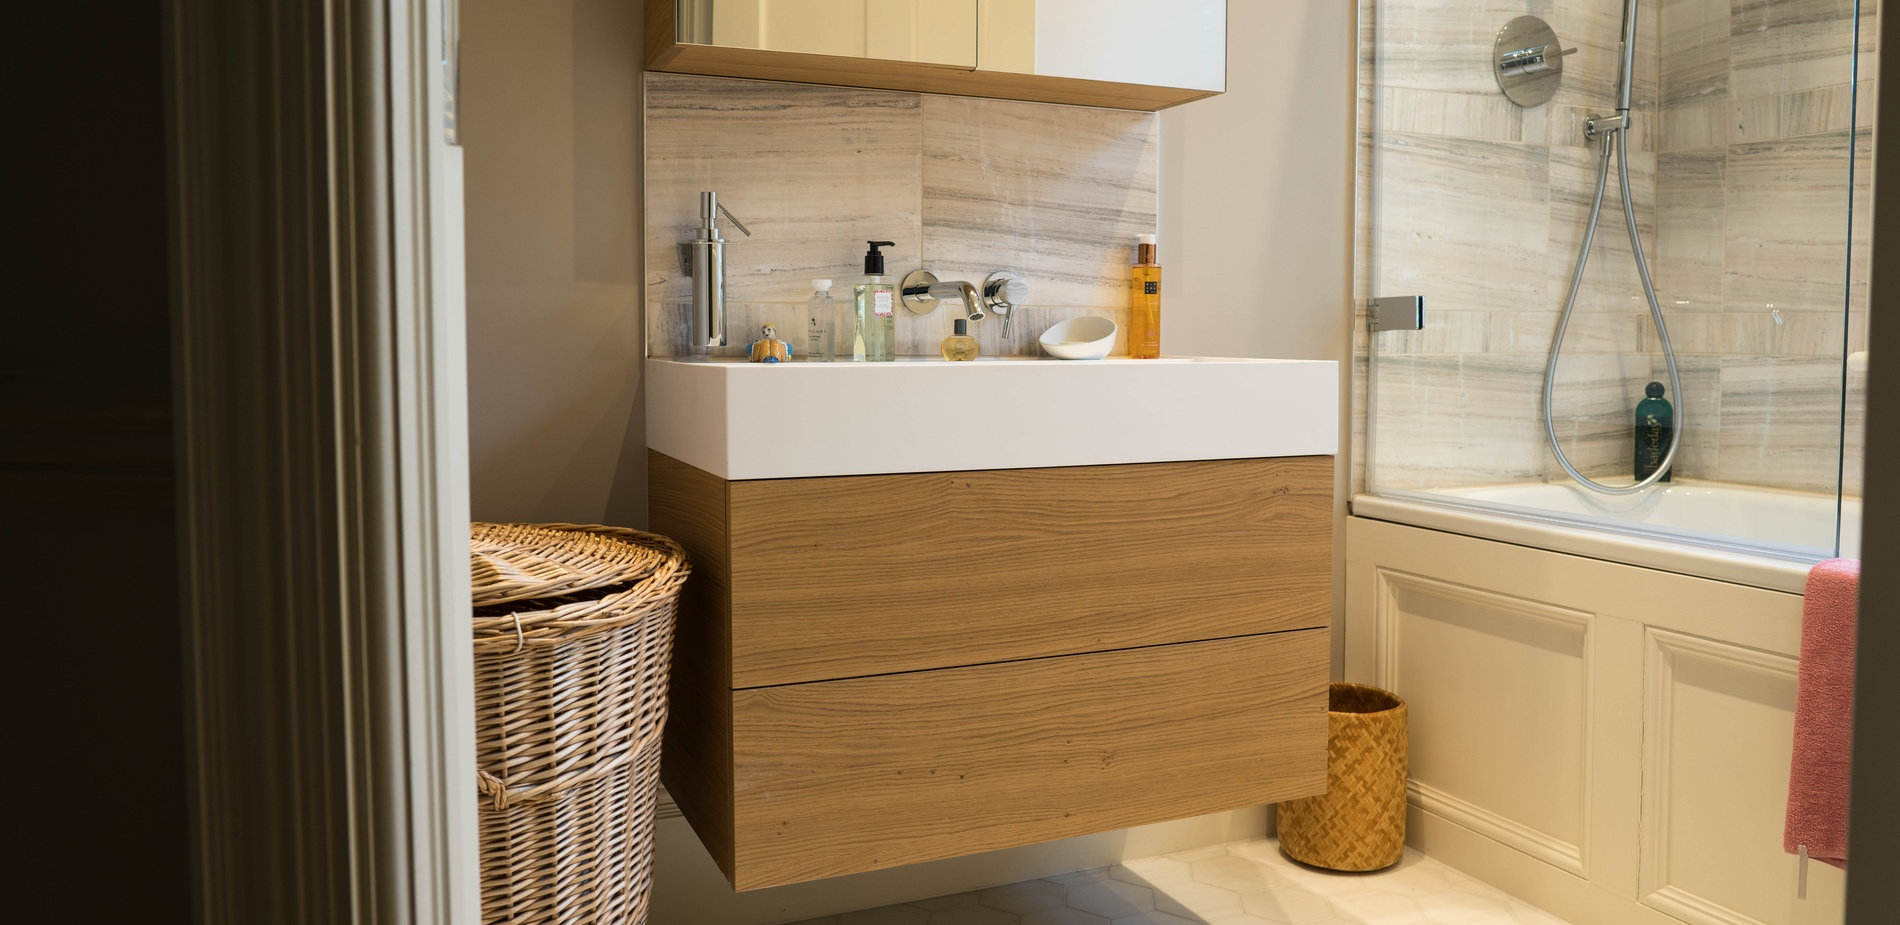 Bathroom cabinetry - K&D Joinery London